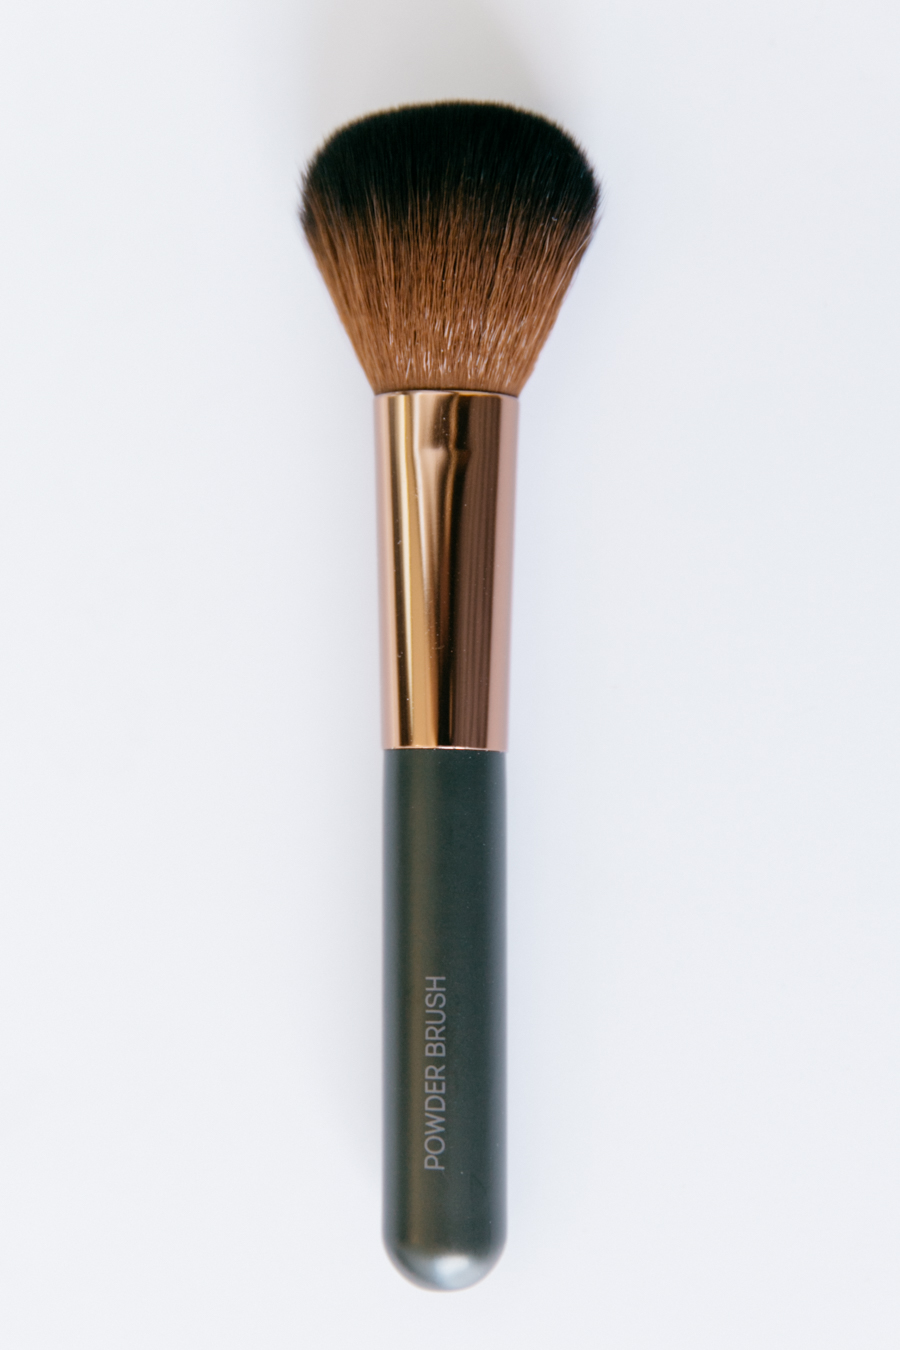 Nude By Nature powder brush.